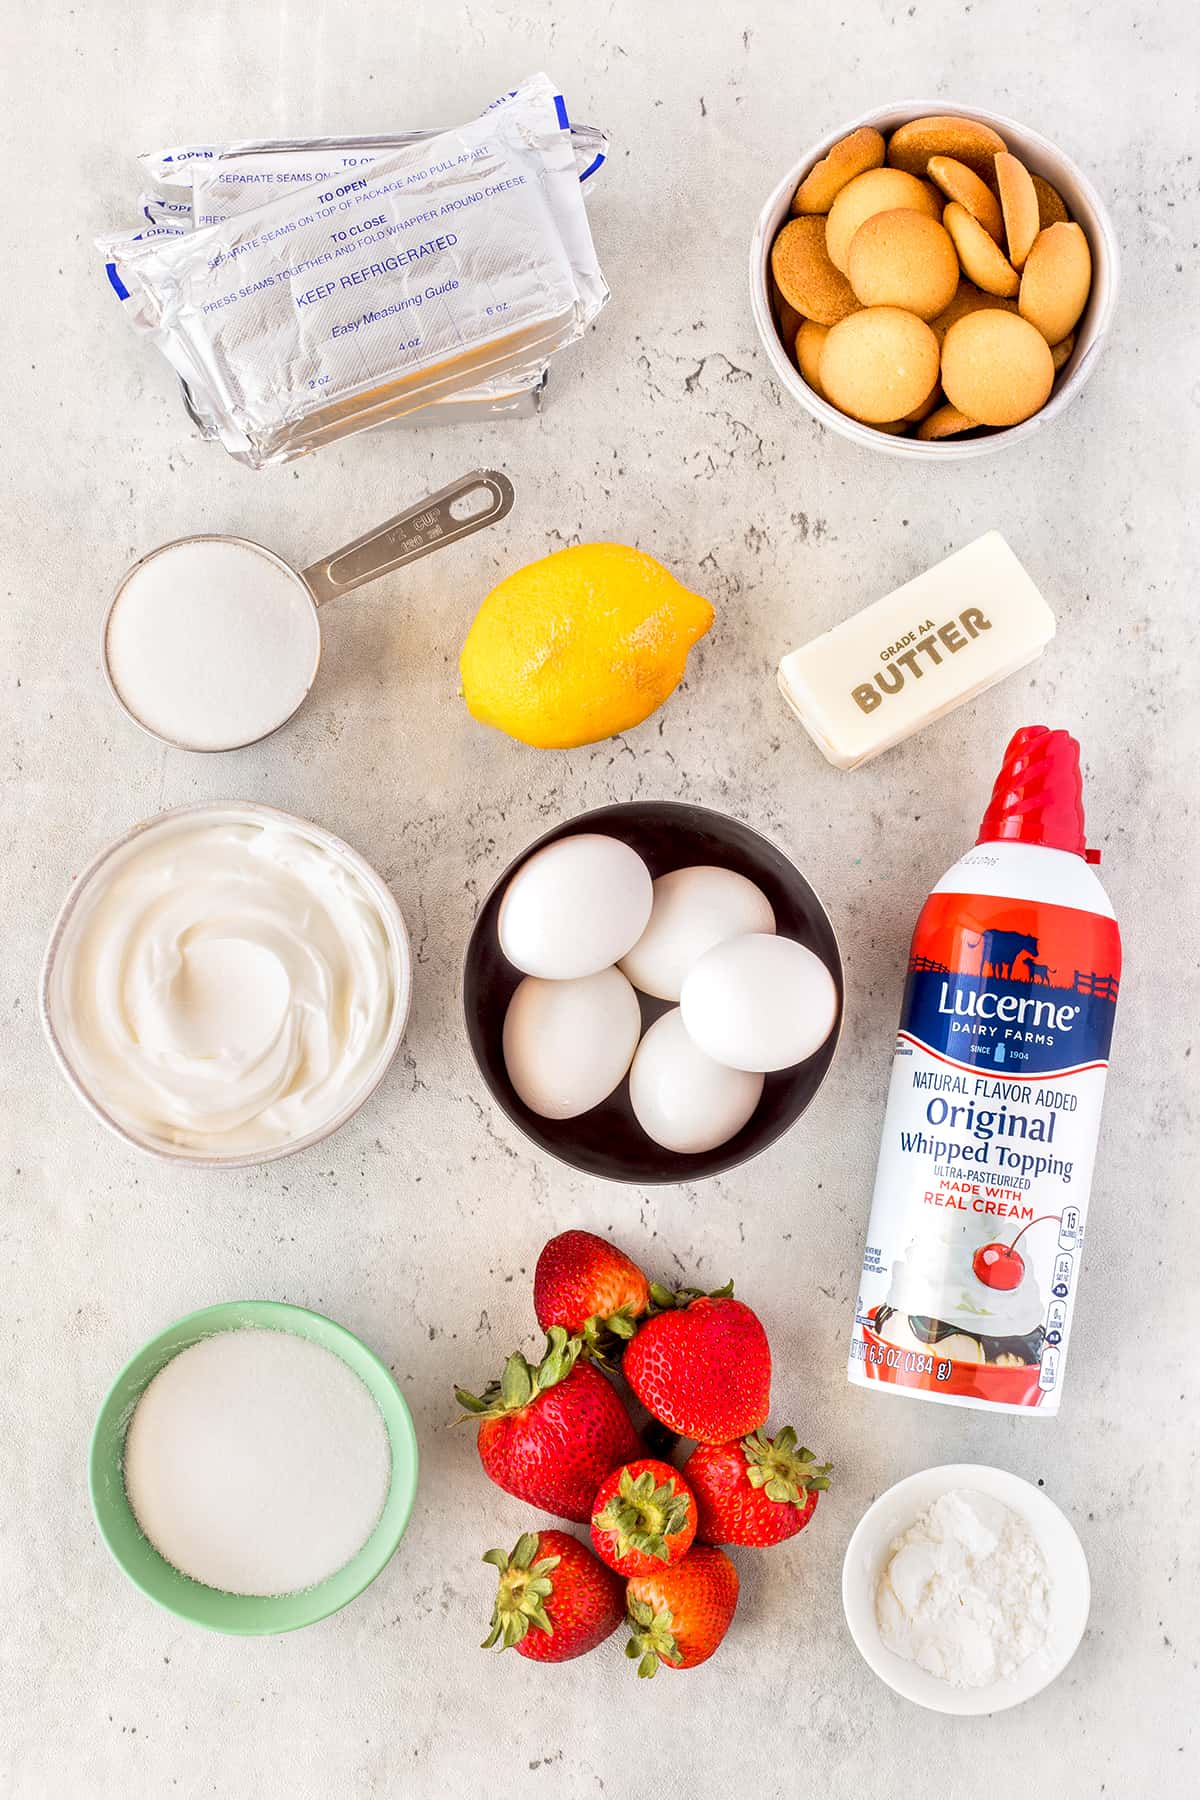 Ingredients for Light and Airy Strawberry Cheesecake